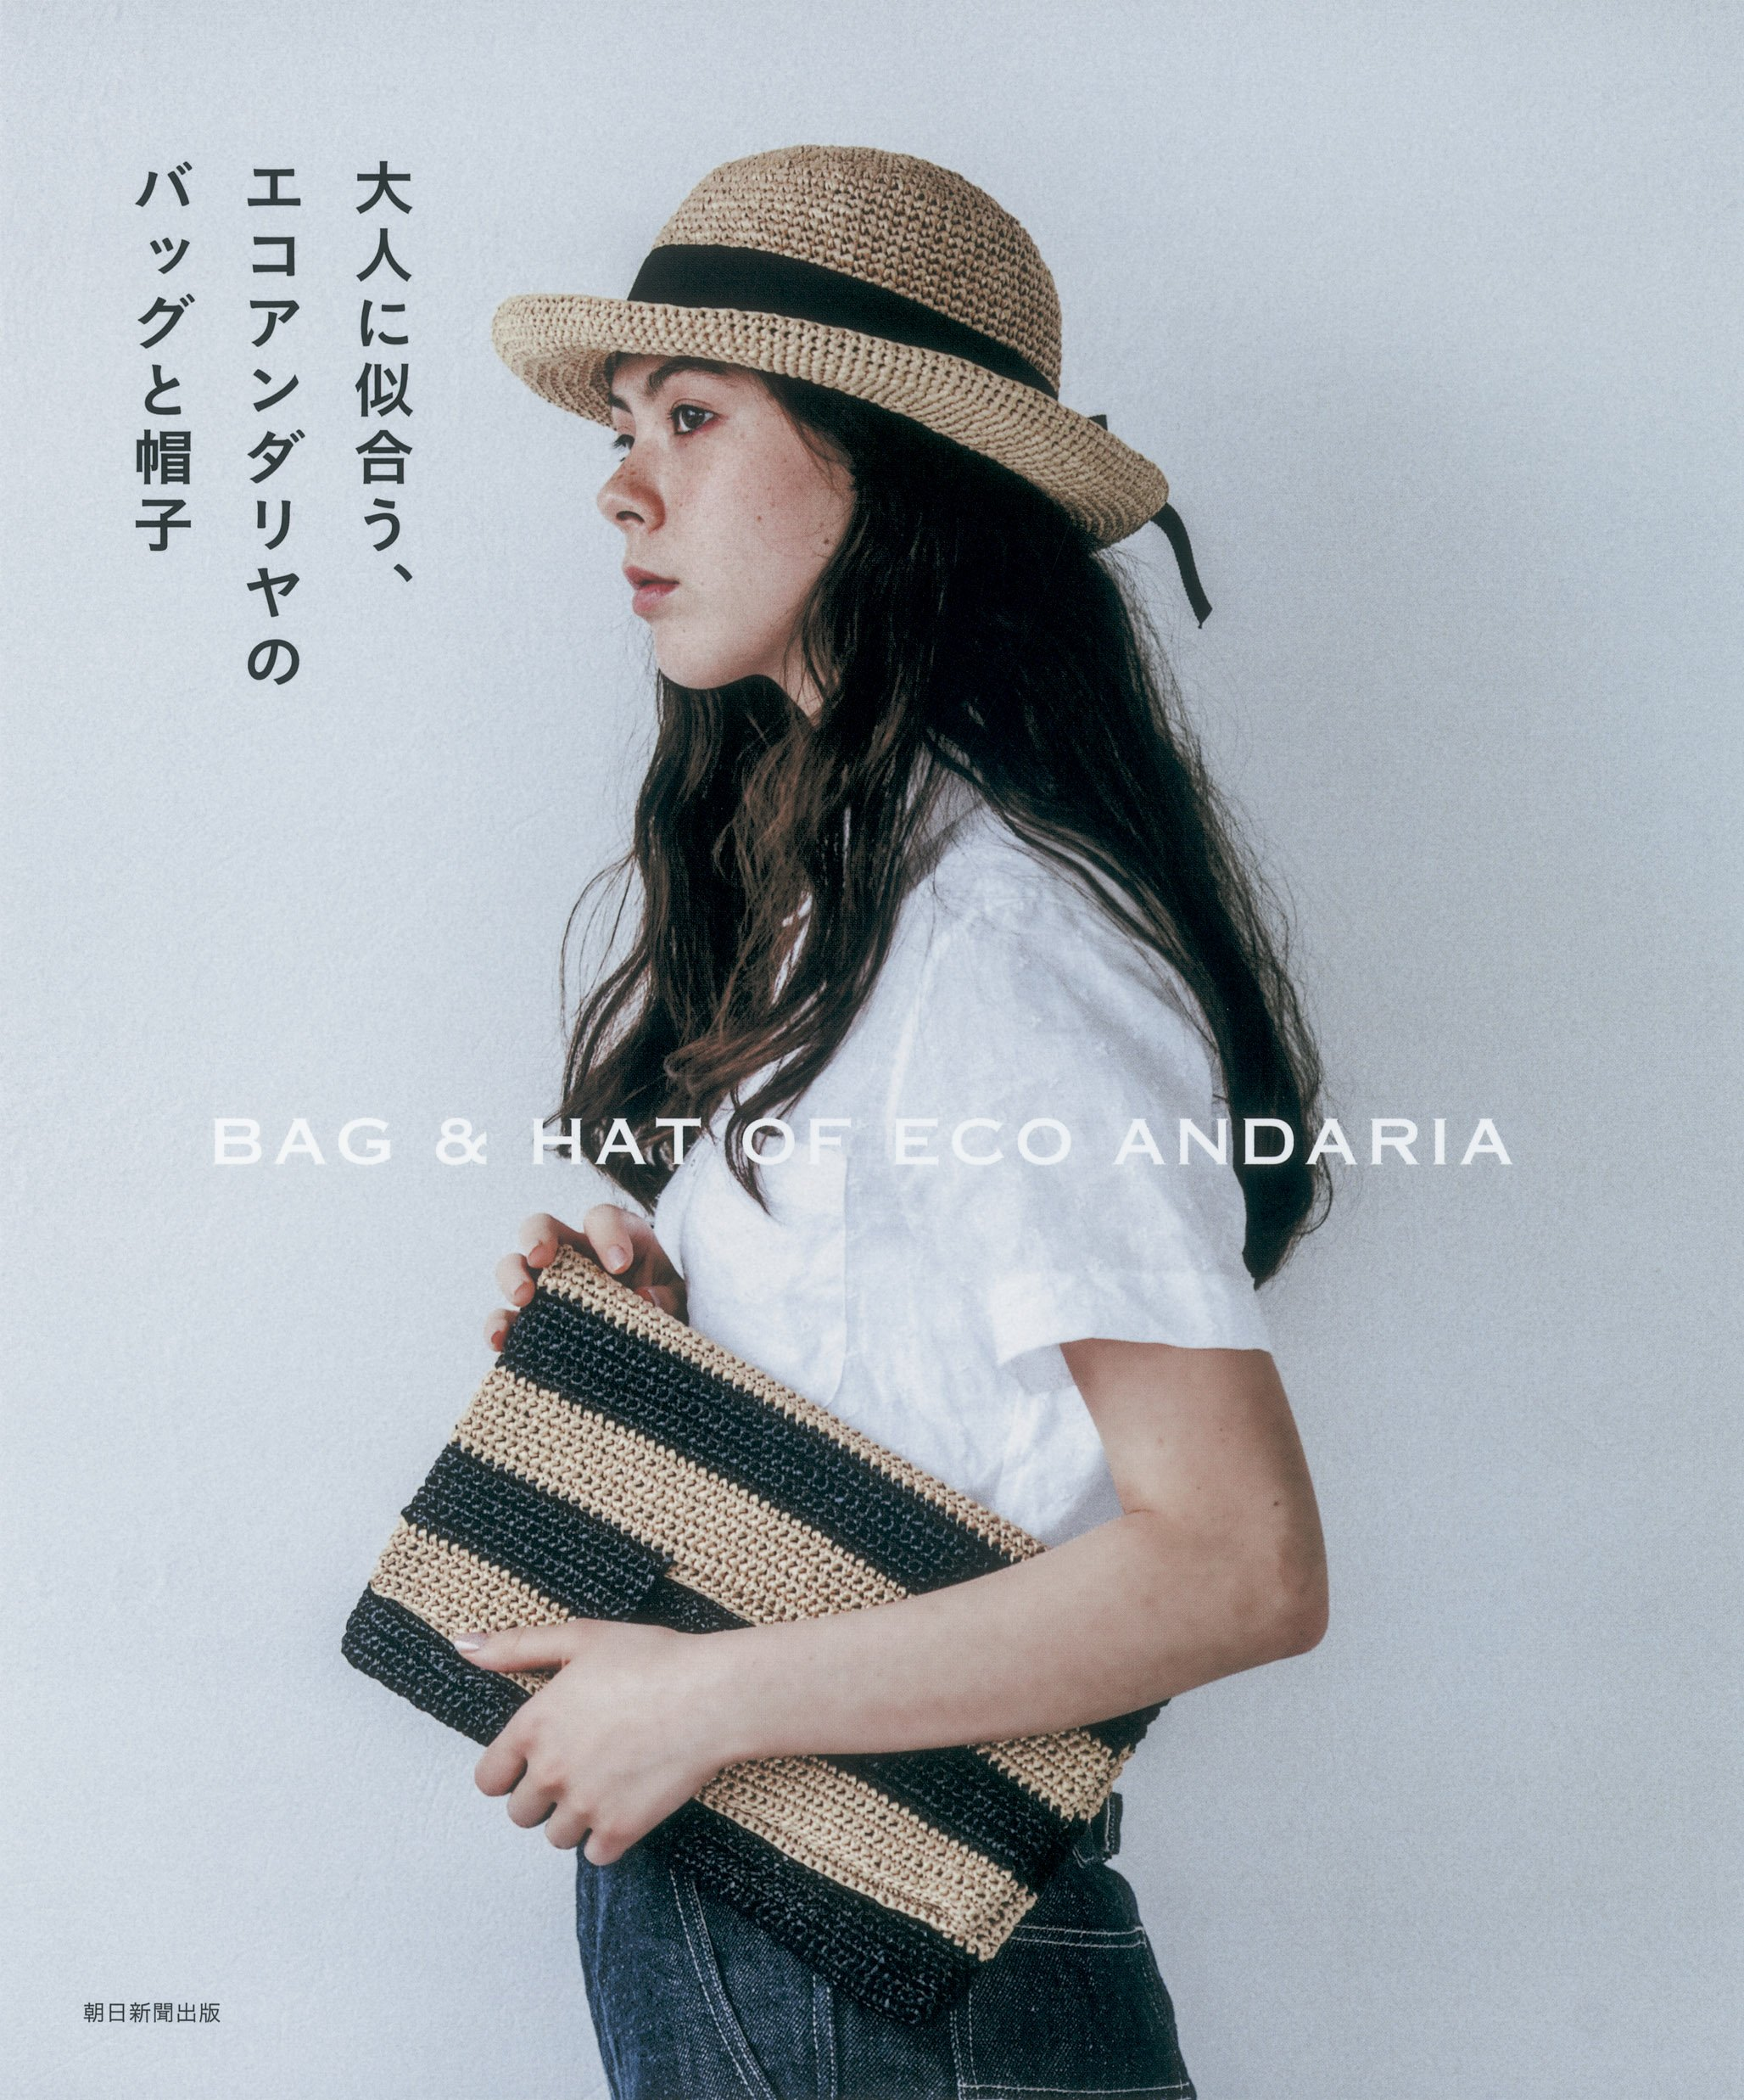 Ekoandariya bag and hat